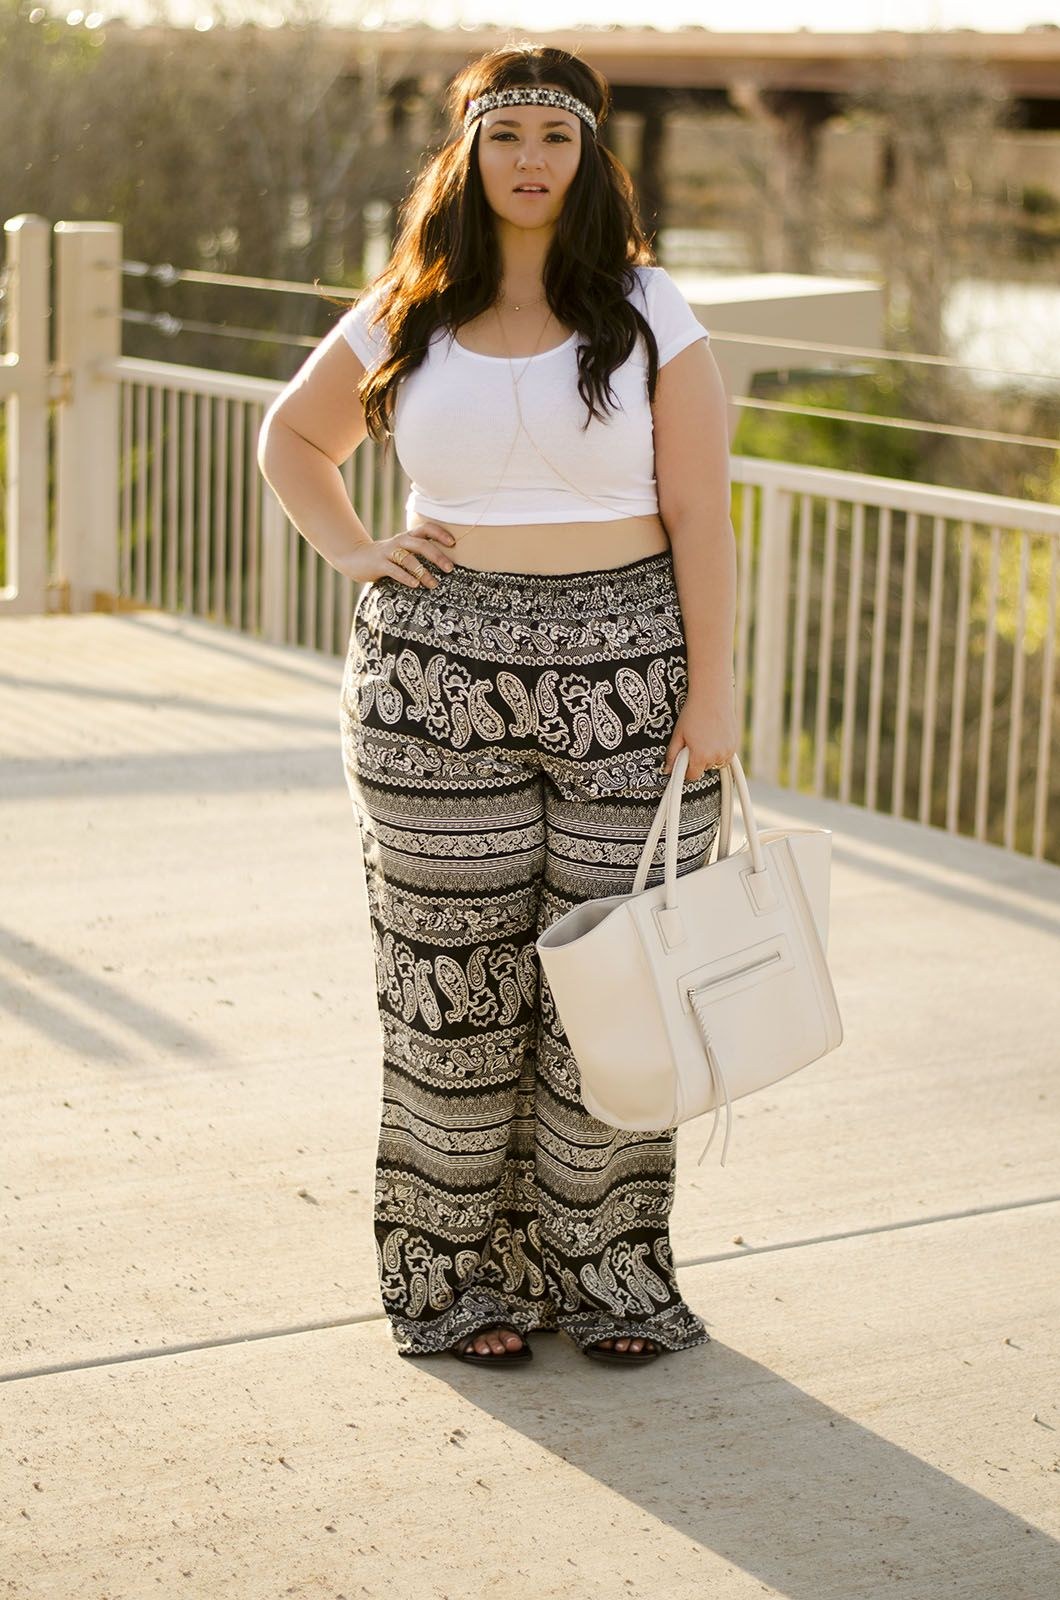 crystal coons boho chic plus size festival outfits charlotte russe